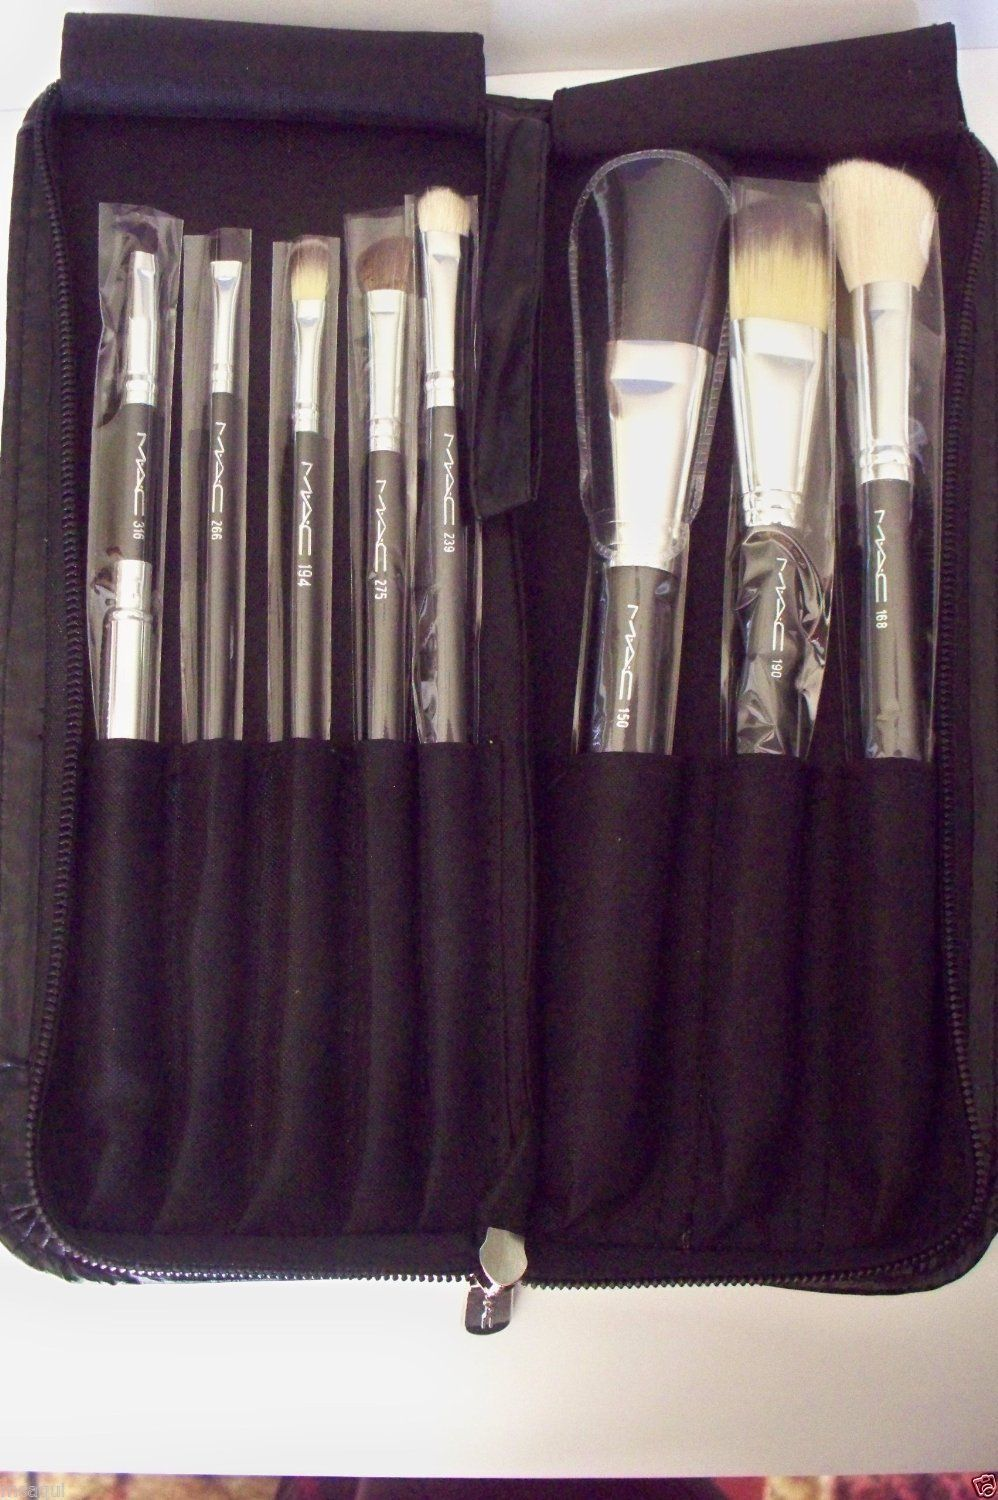 Primary image for M.A.C. 8-Piece Makeup Brush Set